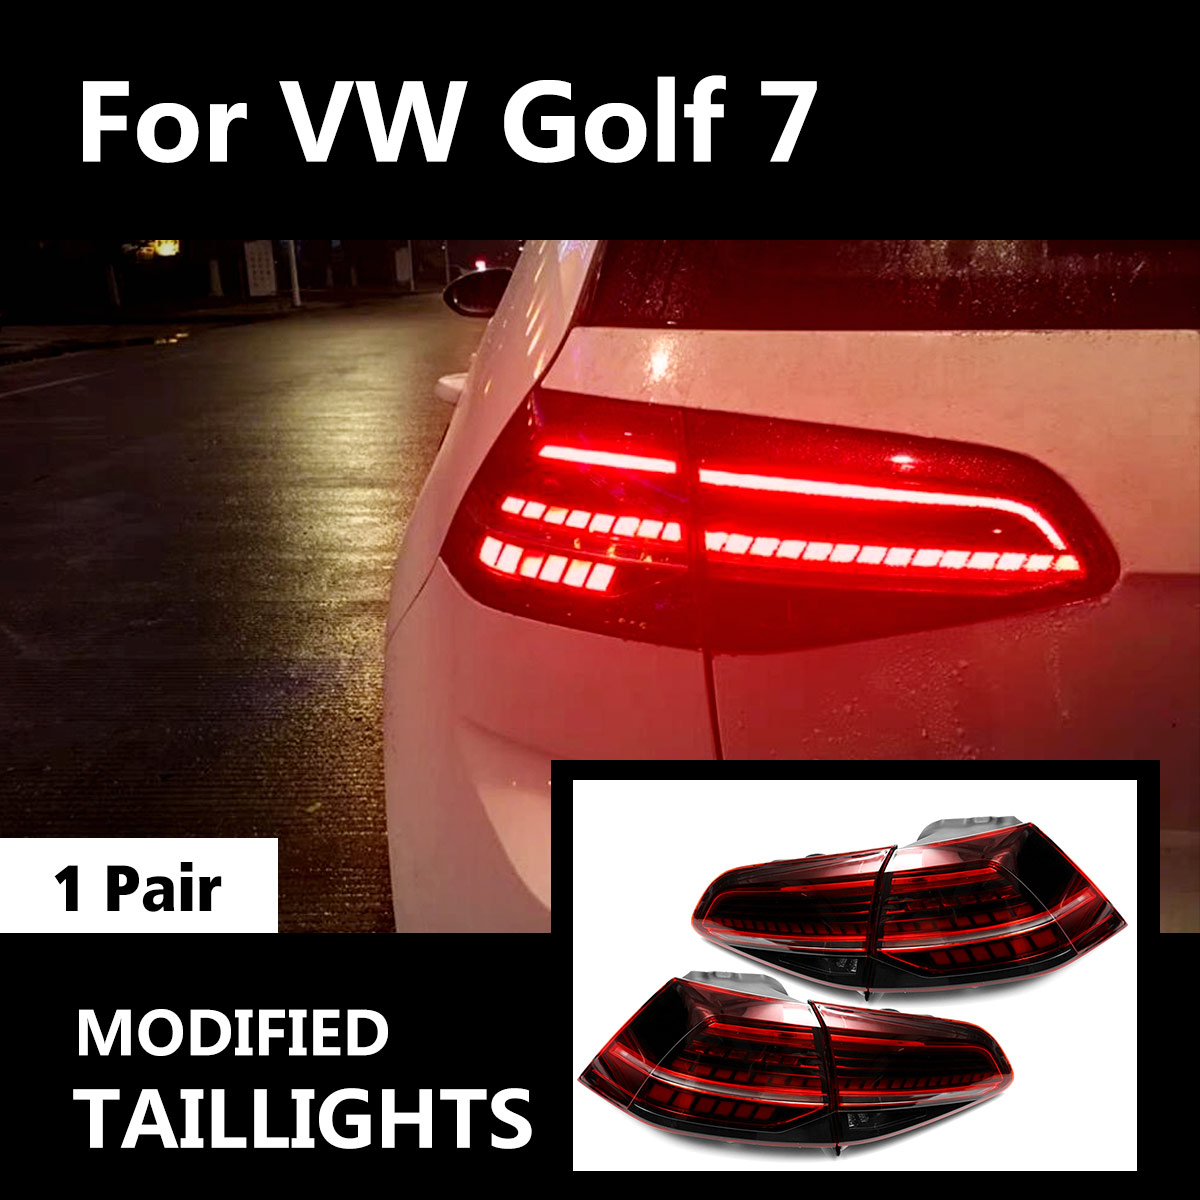 LED Dynamic Tail Light for VW Golf7 MK7 Golf 7 Golf7.5 MK 7.5 Car Styling Taillights Tail Lights LED Rear Lamp Automobile DIY